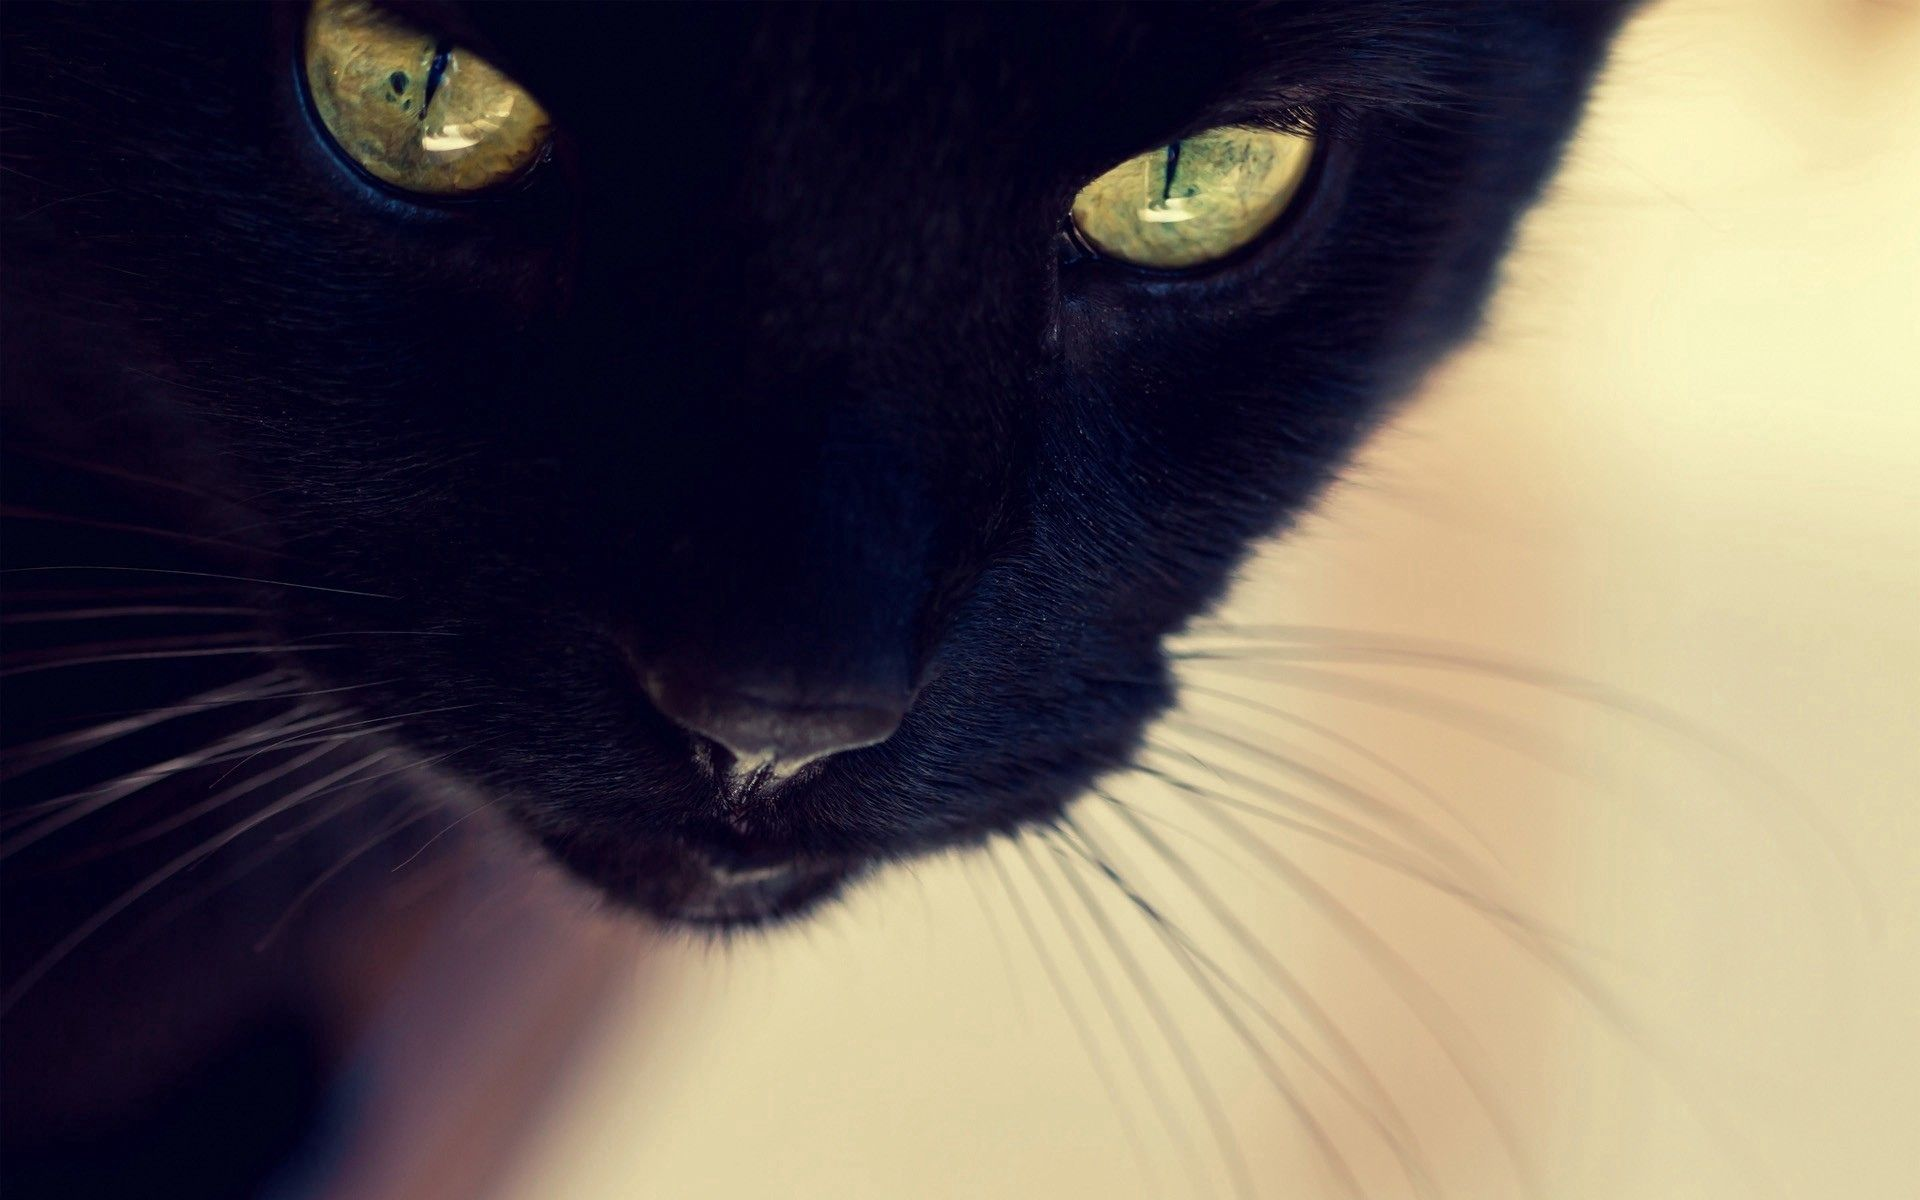 74049 download wallpaper Animals, Black Cat, Muzzle, Eyes, Nose, Mustache, Moustache screensavers and pictures for free